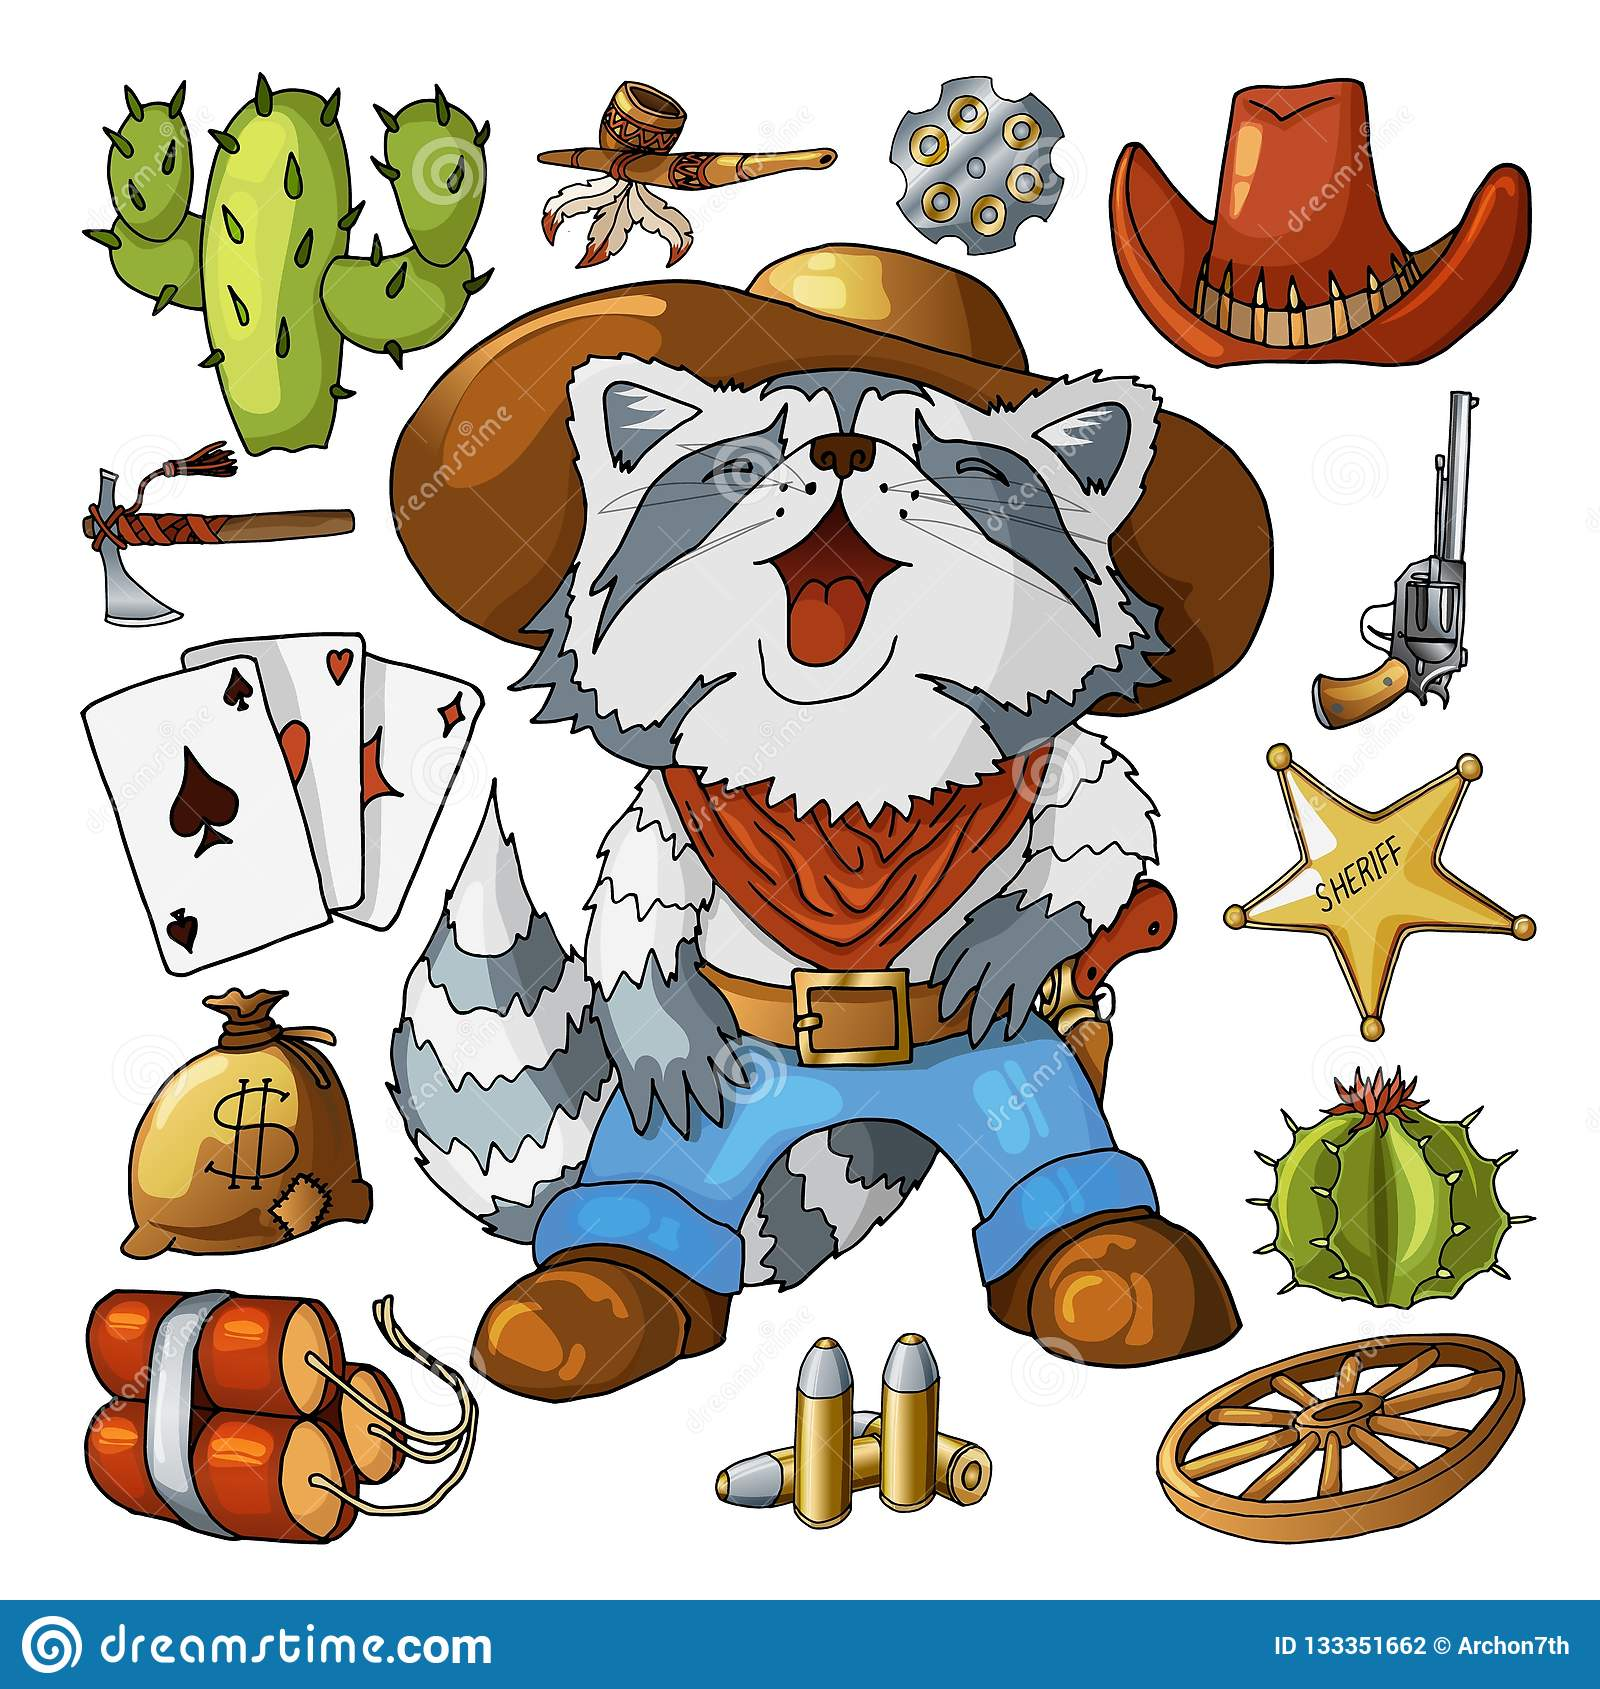 Western wild west art stickers set. Gun, bullets, cactuses and many other items